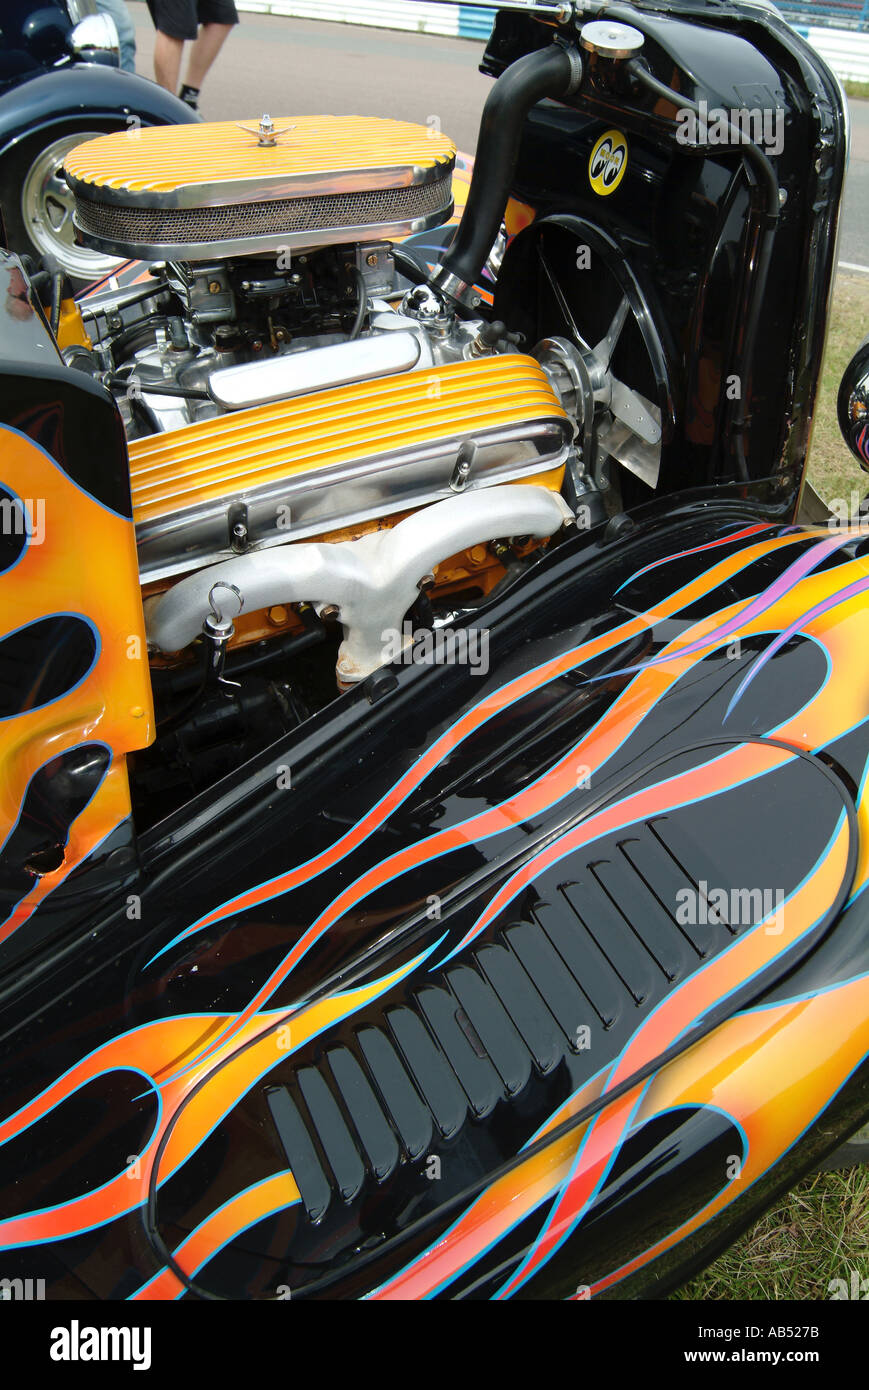 hot rod small block chevy chevrolet v8 engine in a hotrod